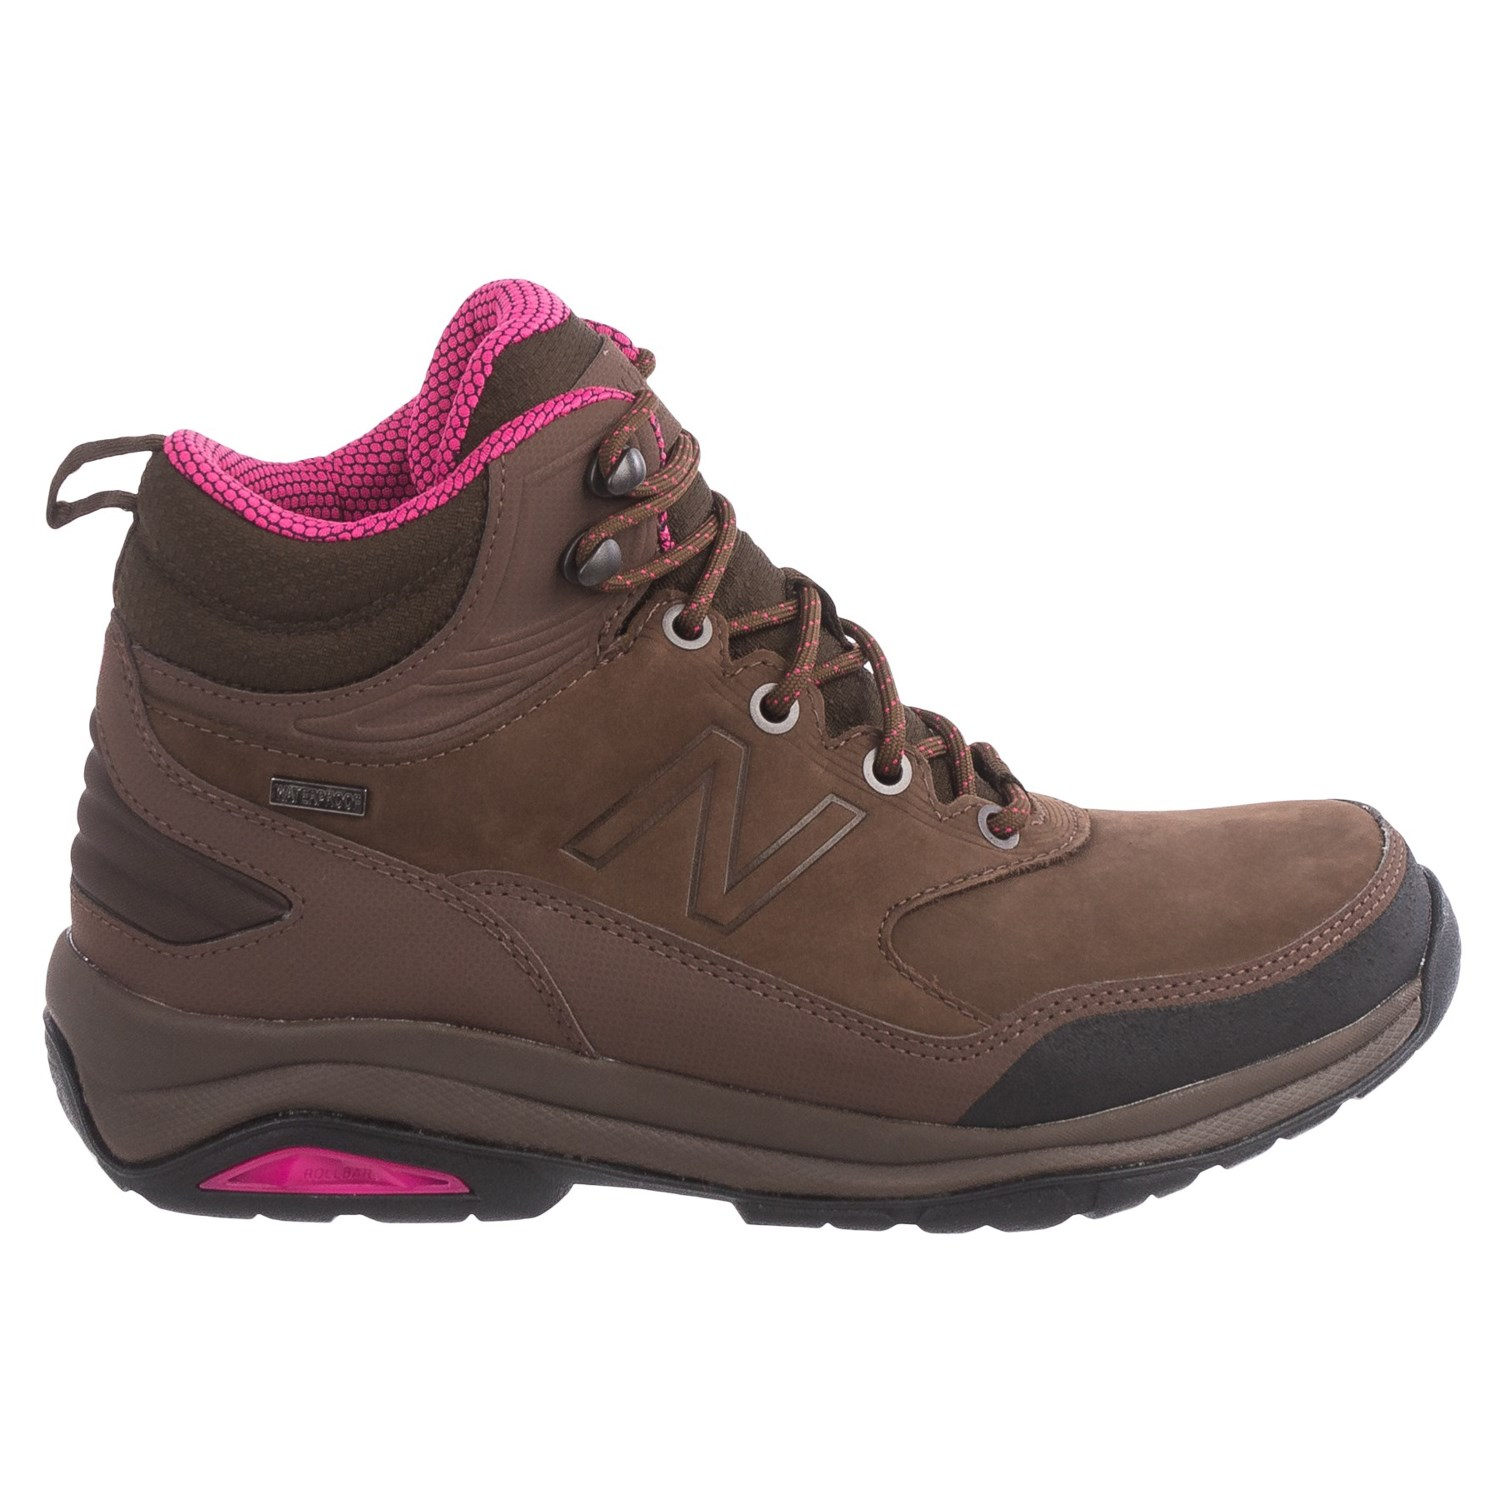 Original Femsxtgd Authentic New Balance Women39s Hiking Boots Reviews